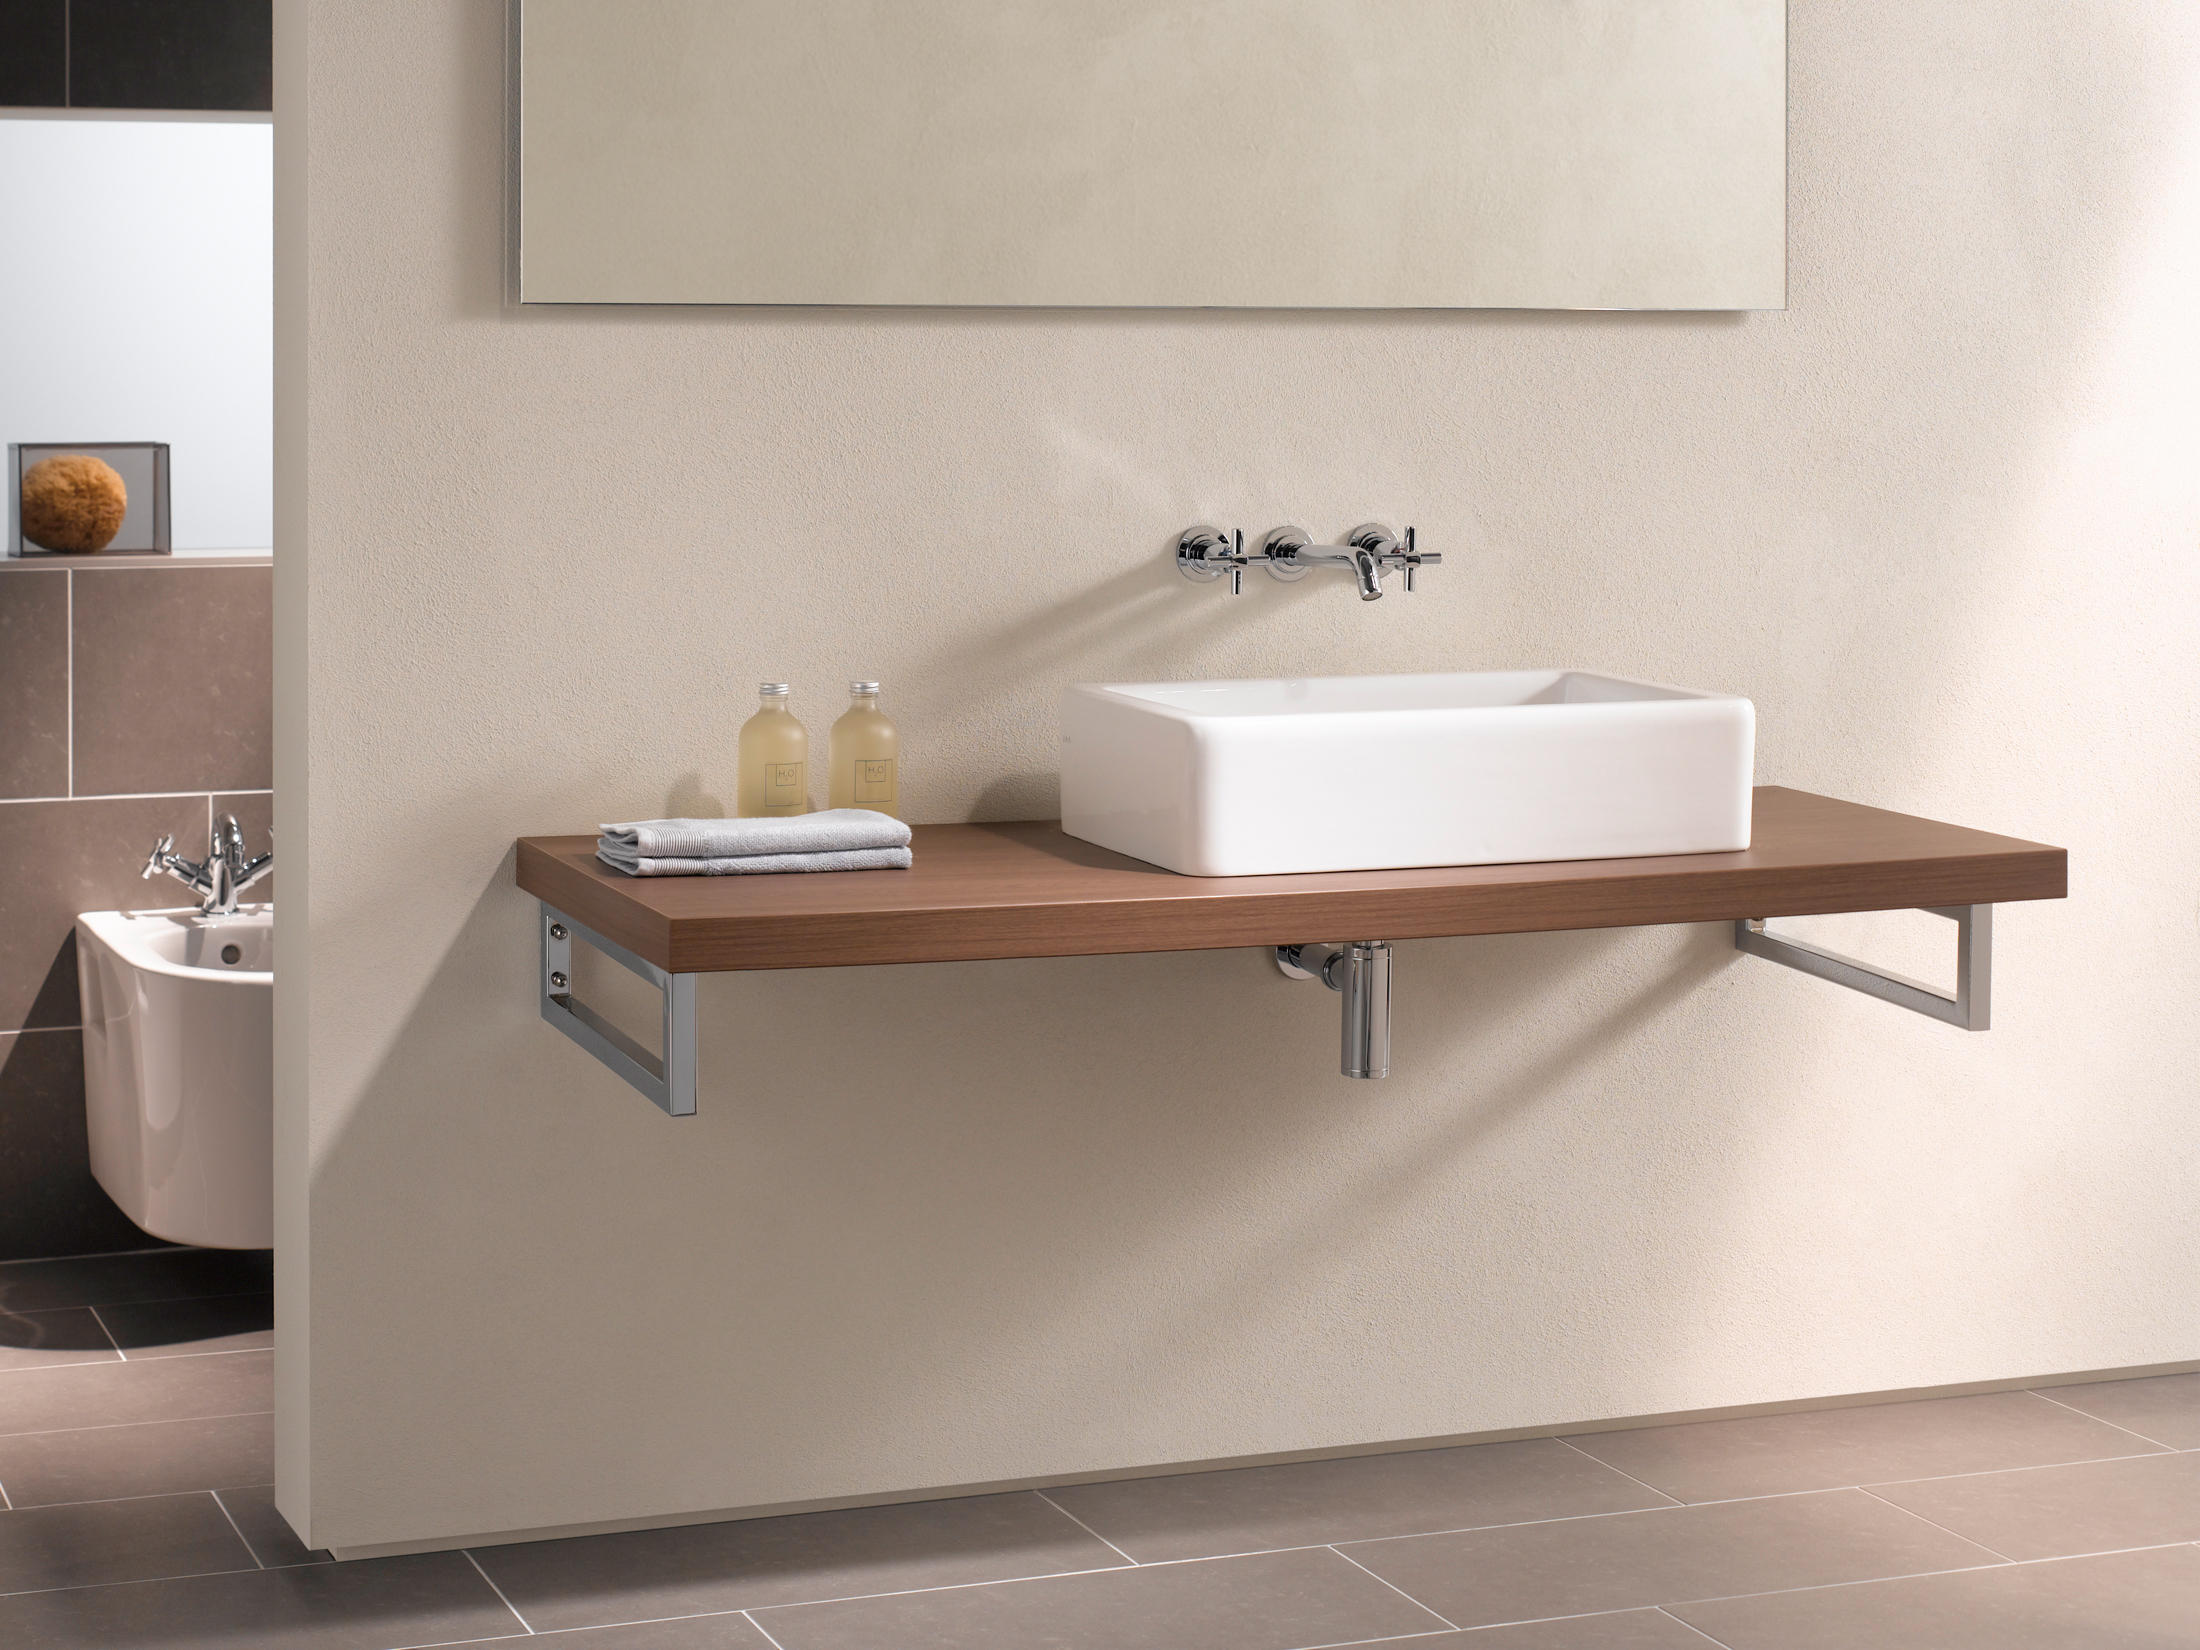 Vitra Badewanne Options Nest Wand Wc Wcs Von Vitra Bad Architonic